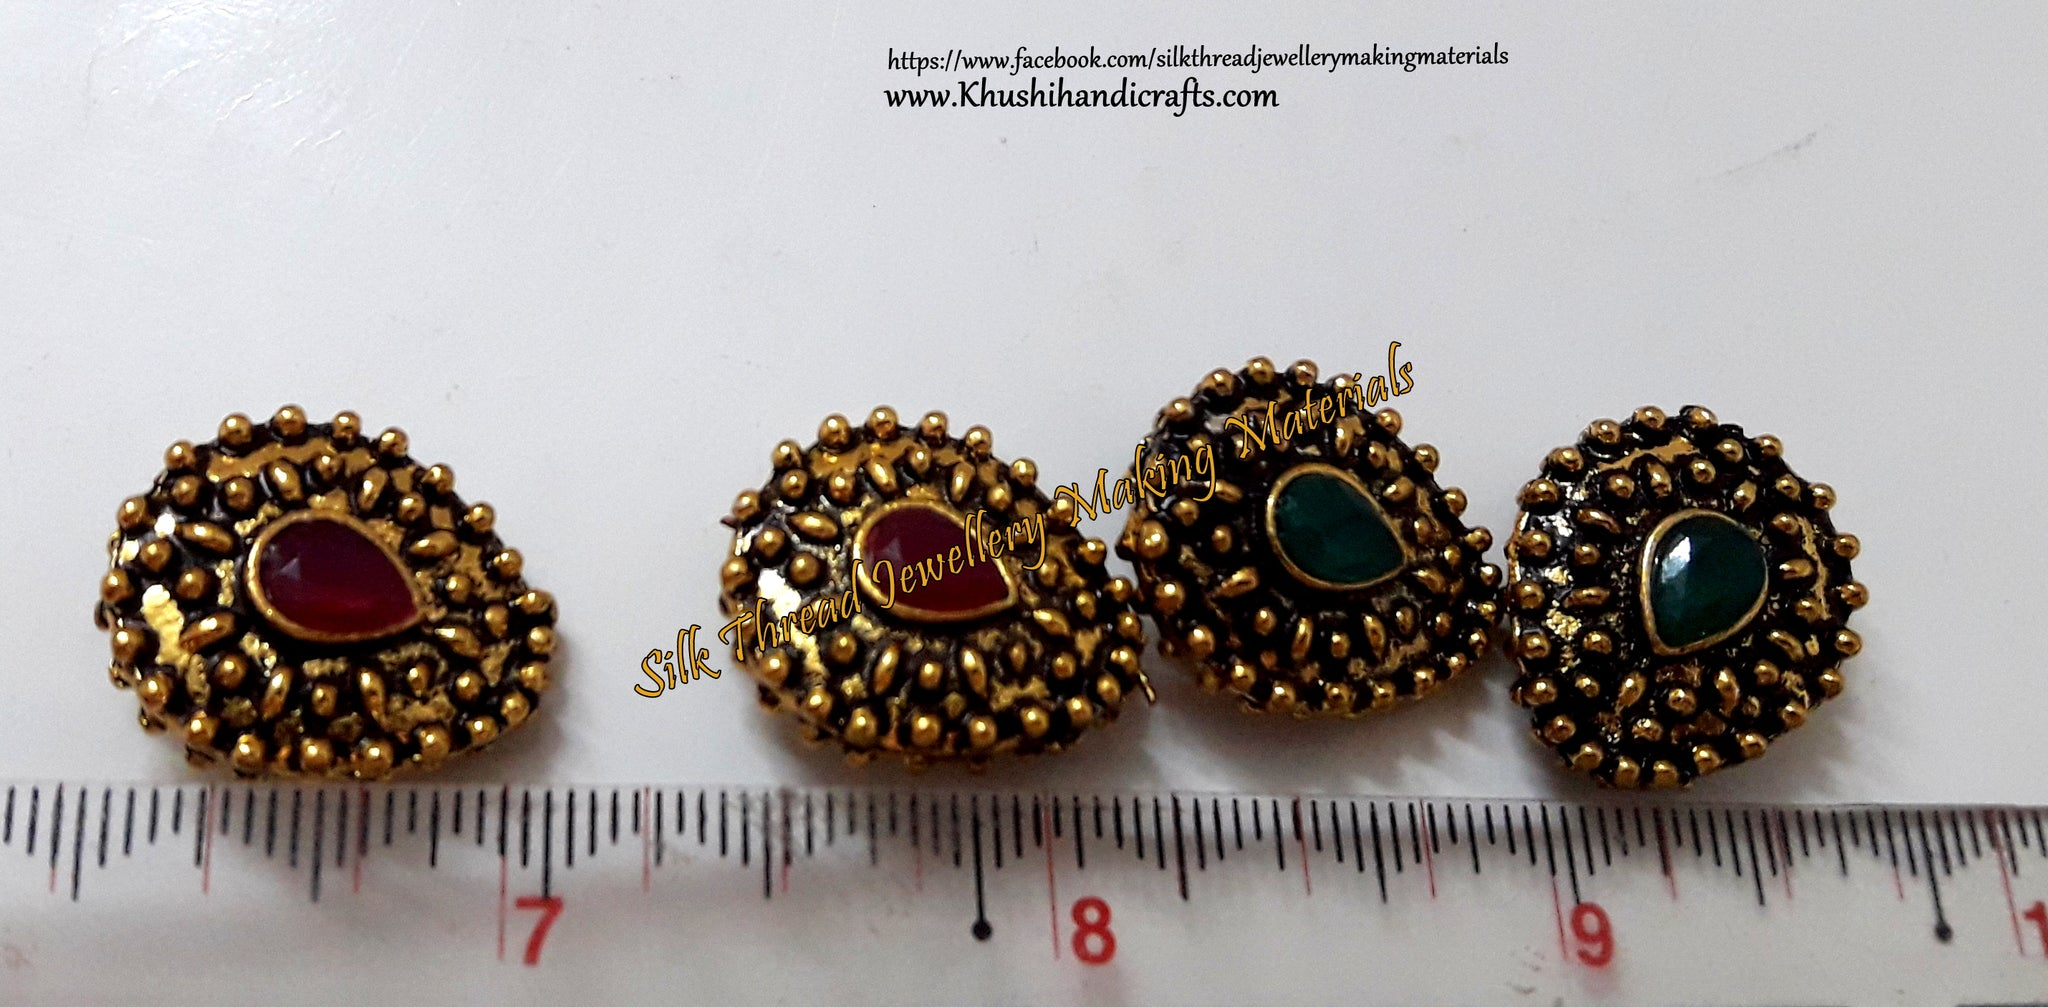 designs and n gold malabar chain traditional jewellery bangle red earrings south elegant indian deepakdev matching price jewelry online designer bracelets carved smitha beads